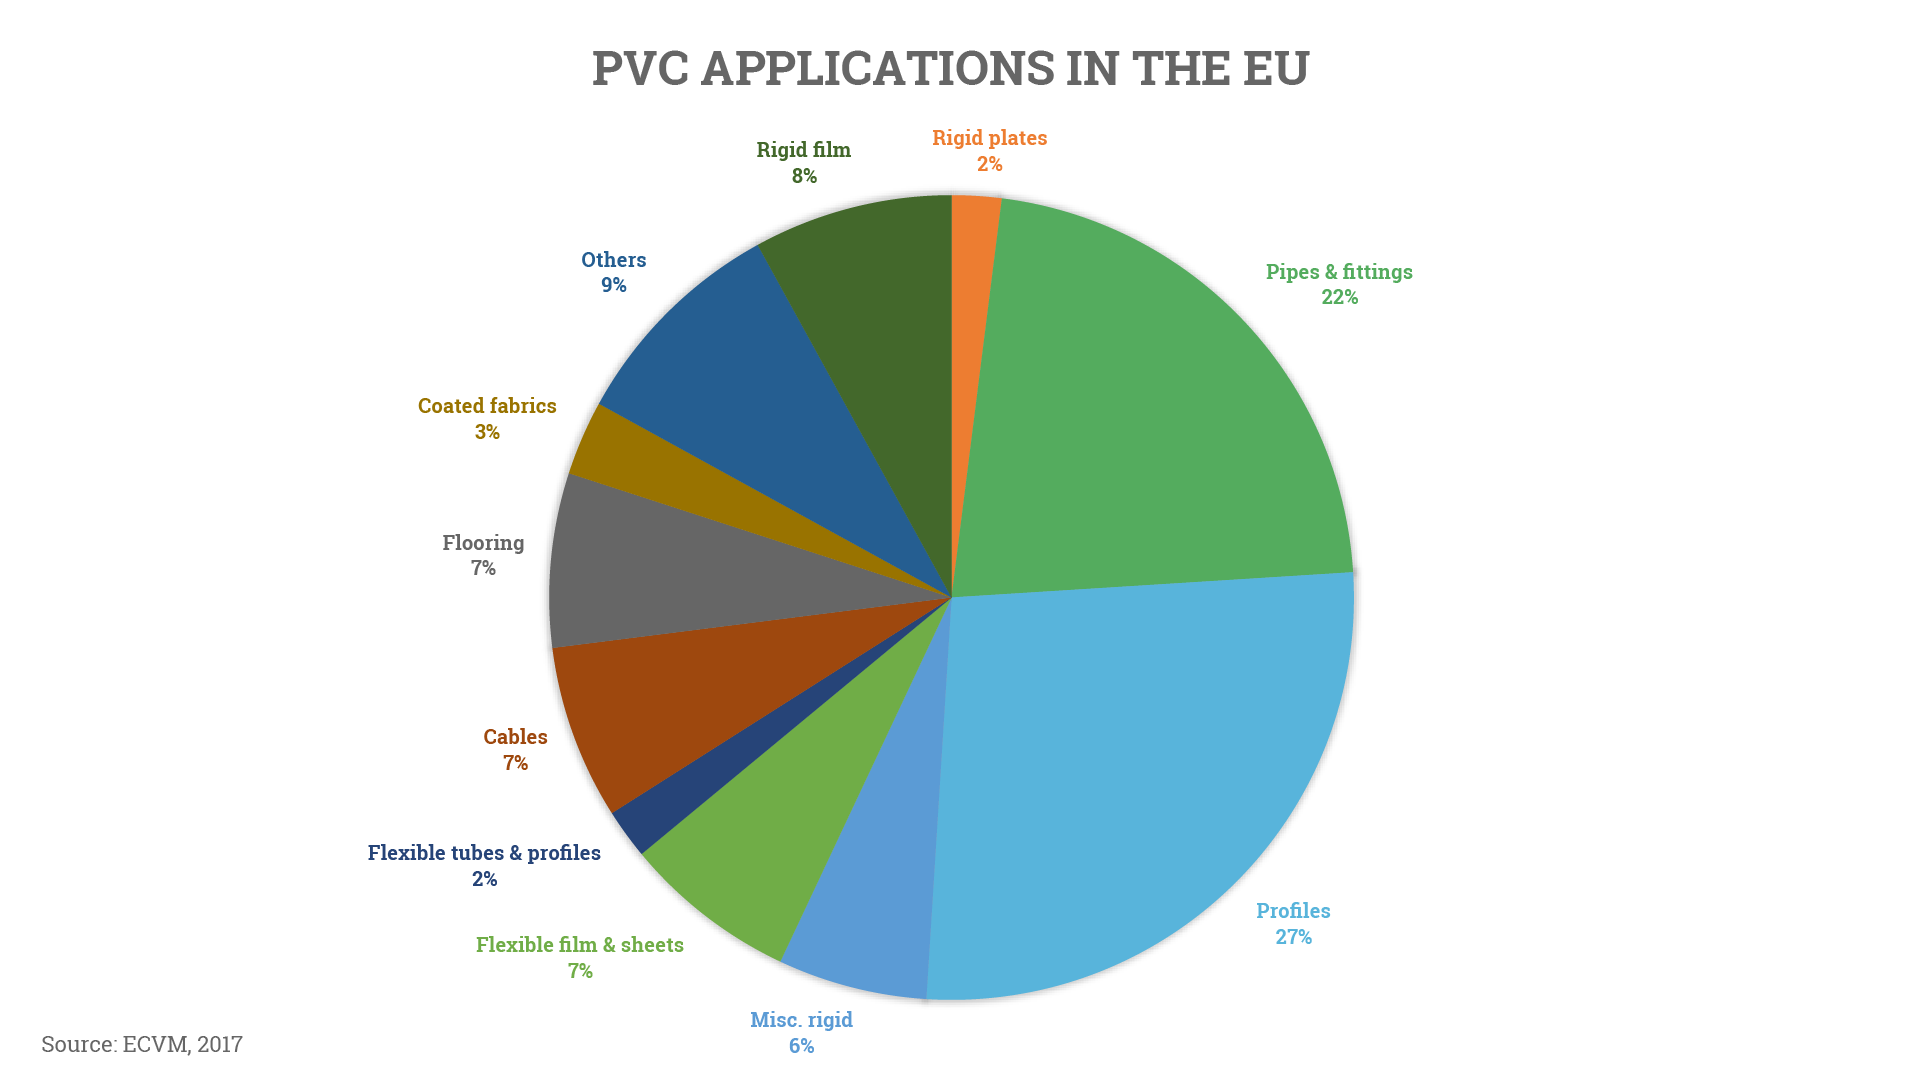 PVC applications in EU